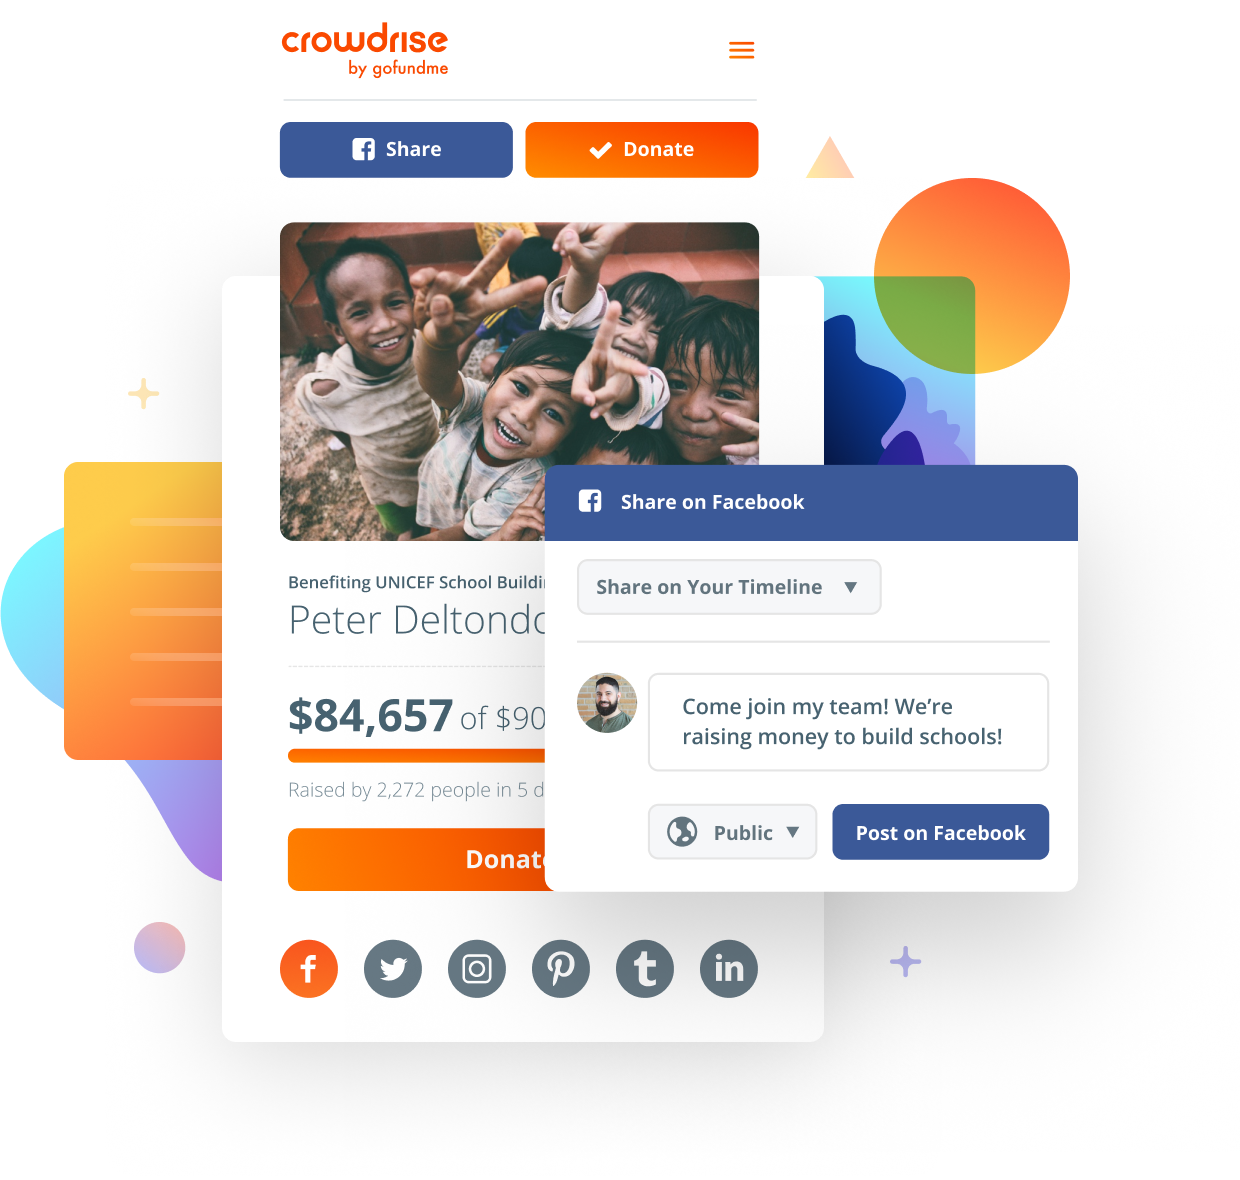 Users can share donation pages on Facebook and Twitter